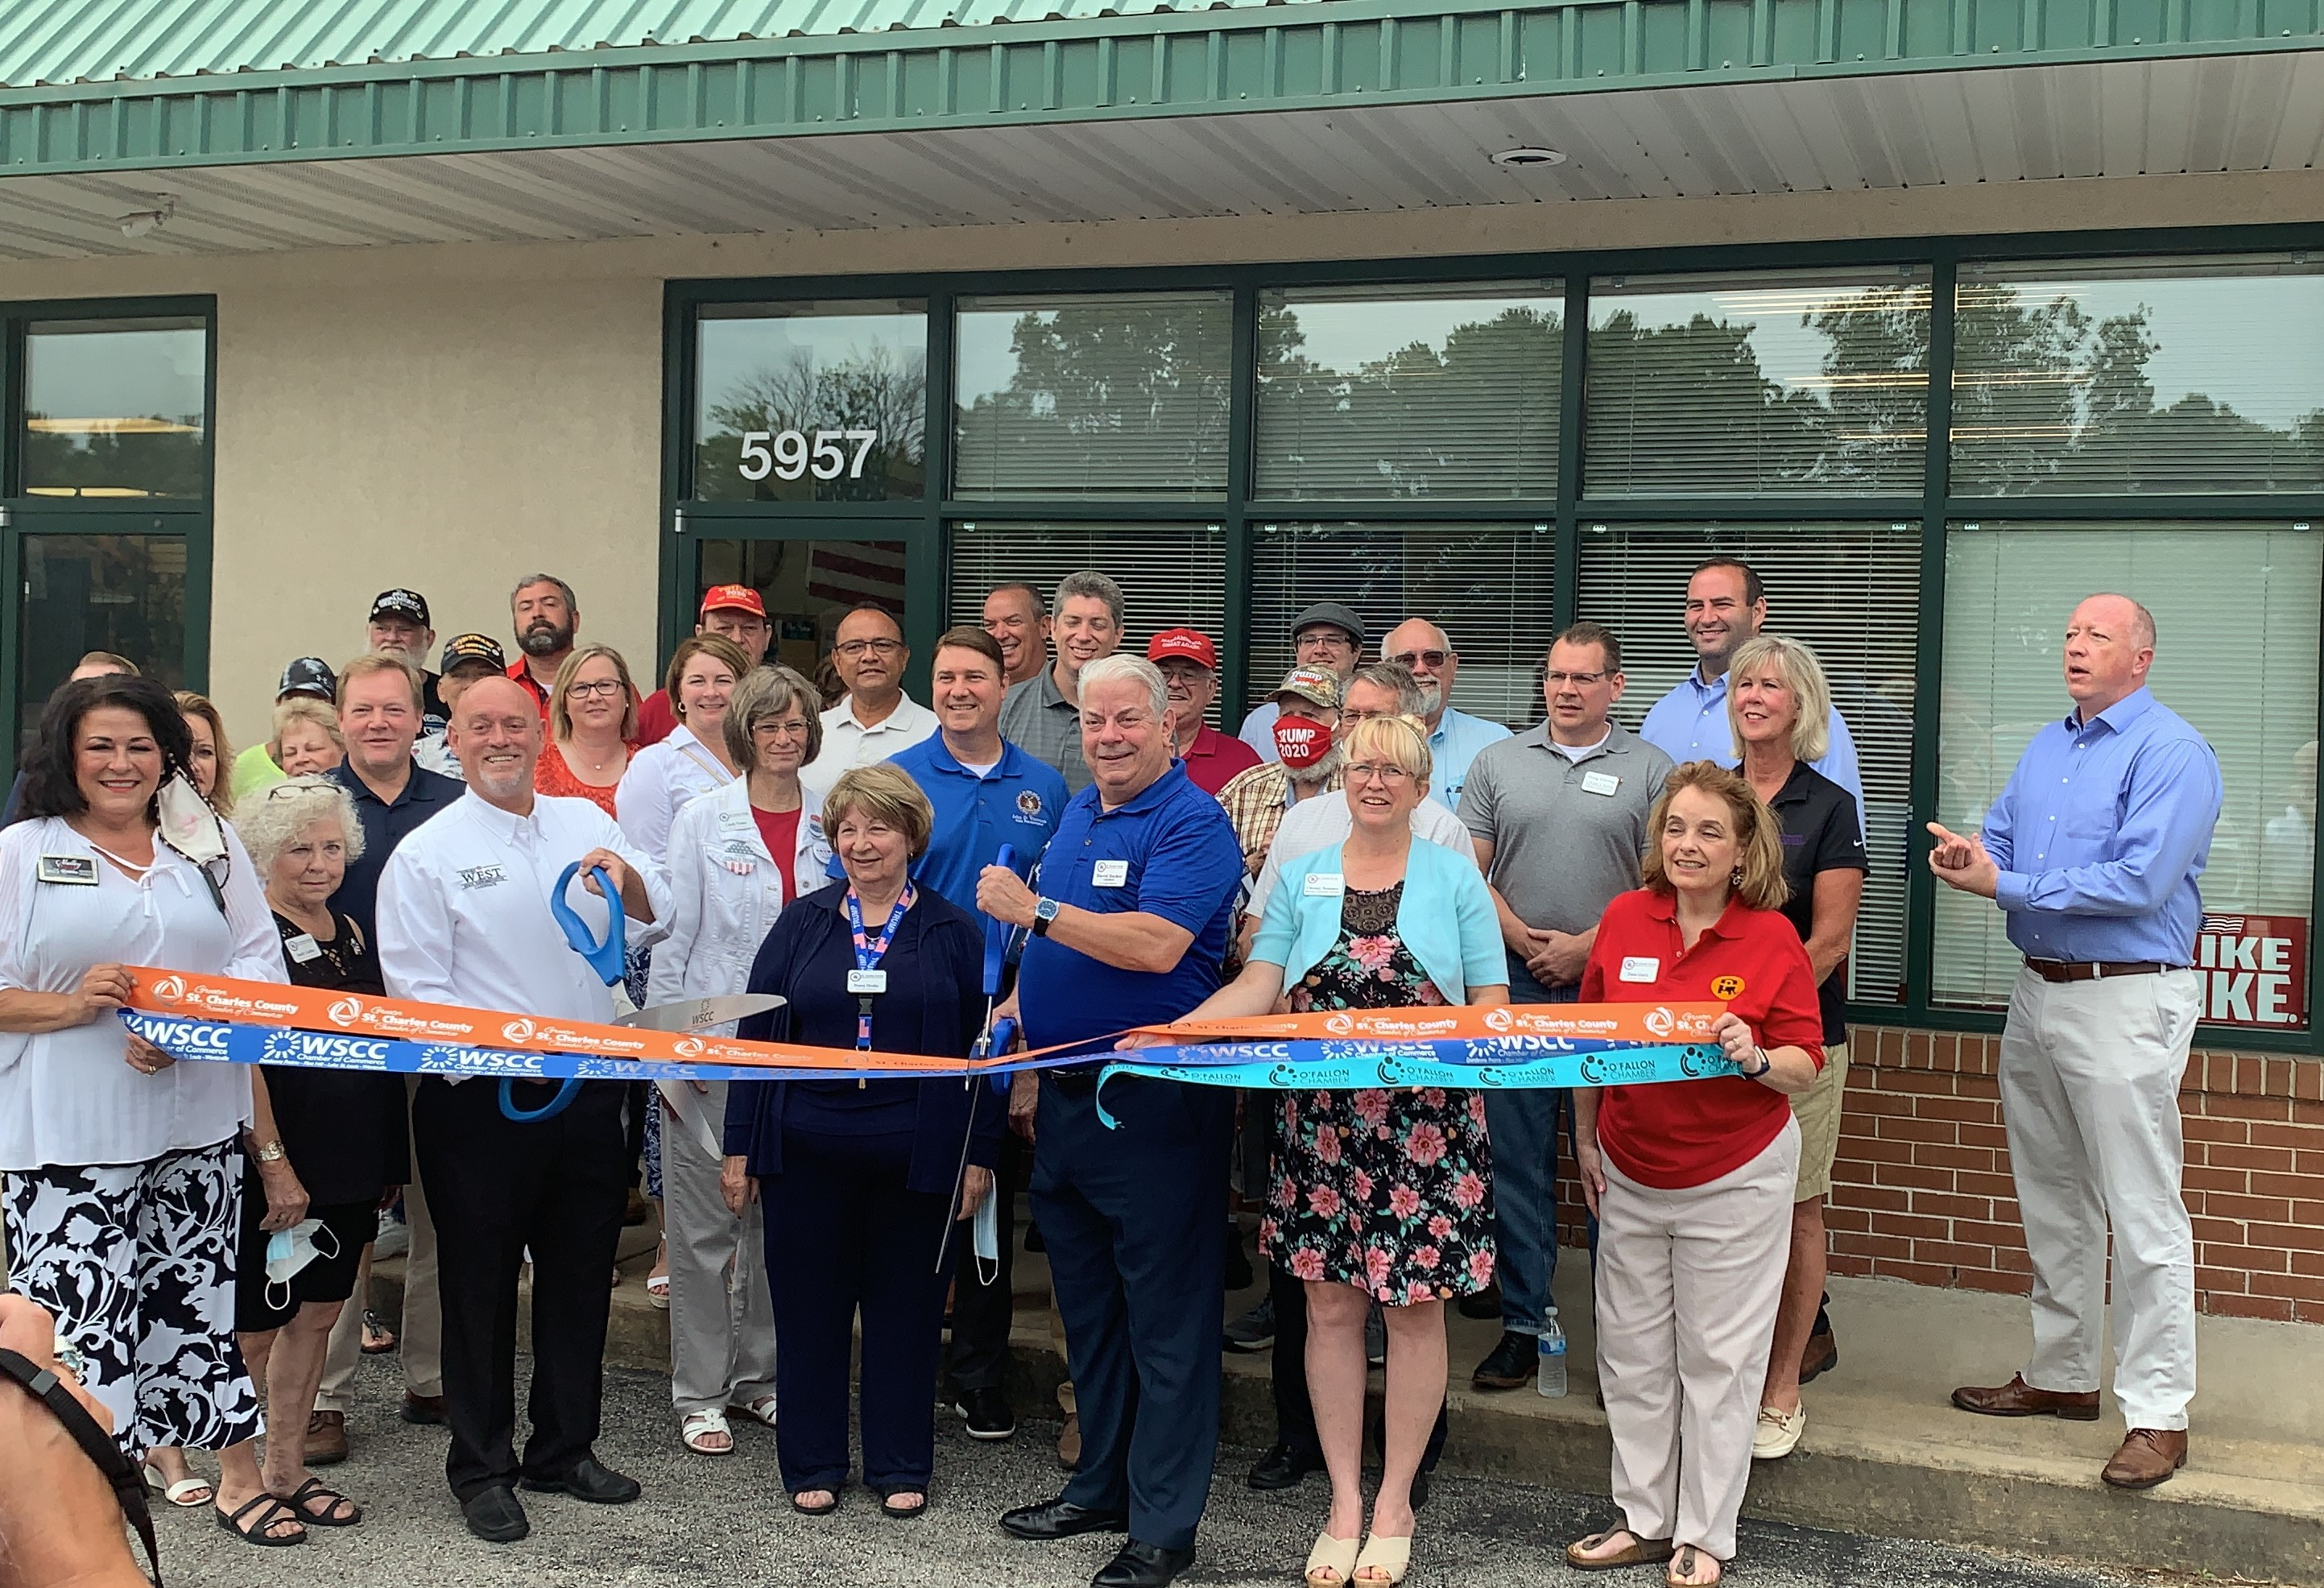 Image for St. Charles County Republican Central Committee Celebrates New Office with Ribbon Cutting